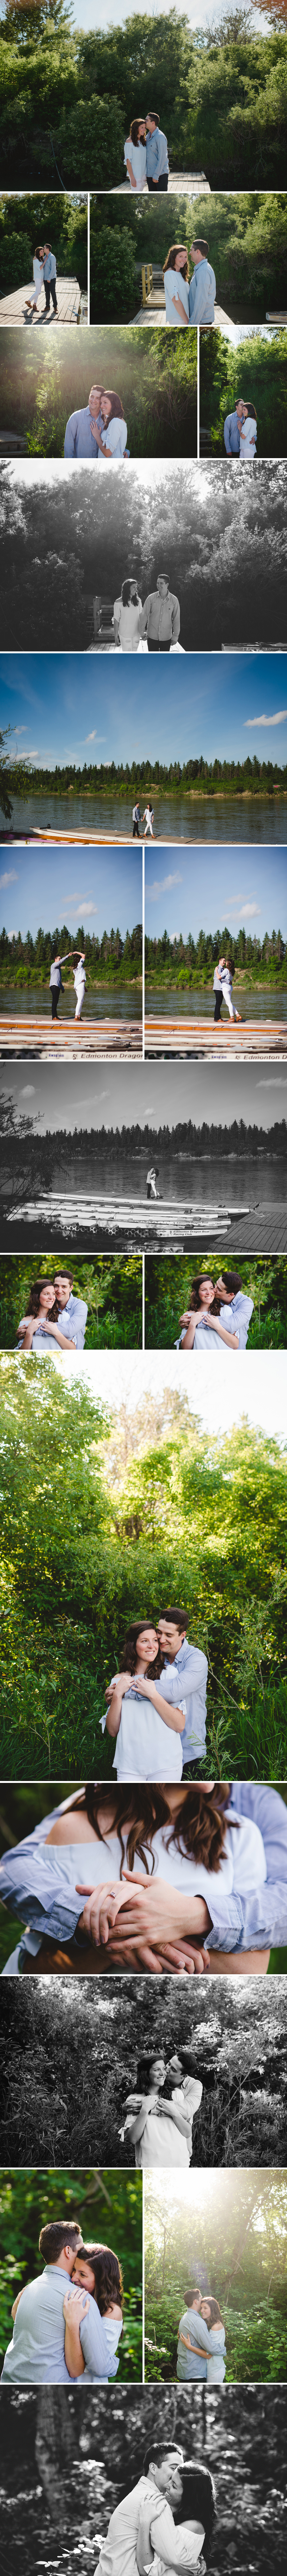 yeg_bbcollective_engagement_photography_edmonton_breannaandhunter_2017